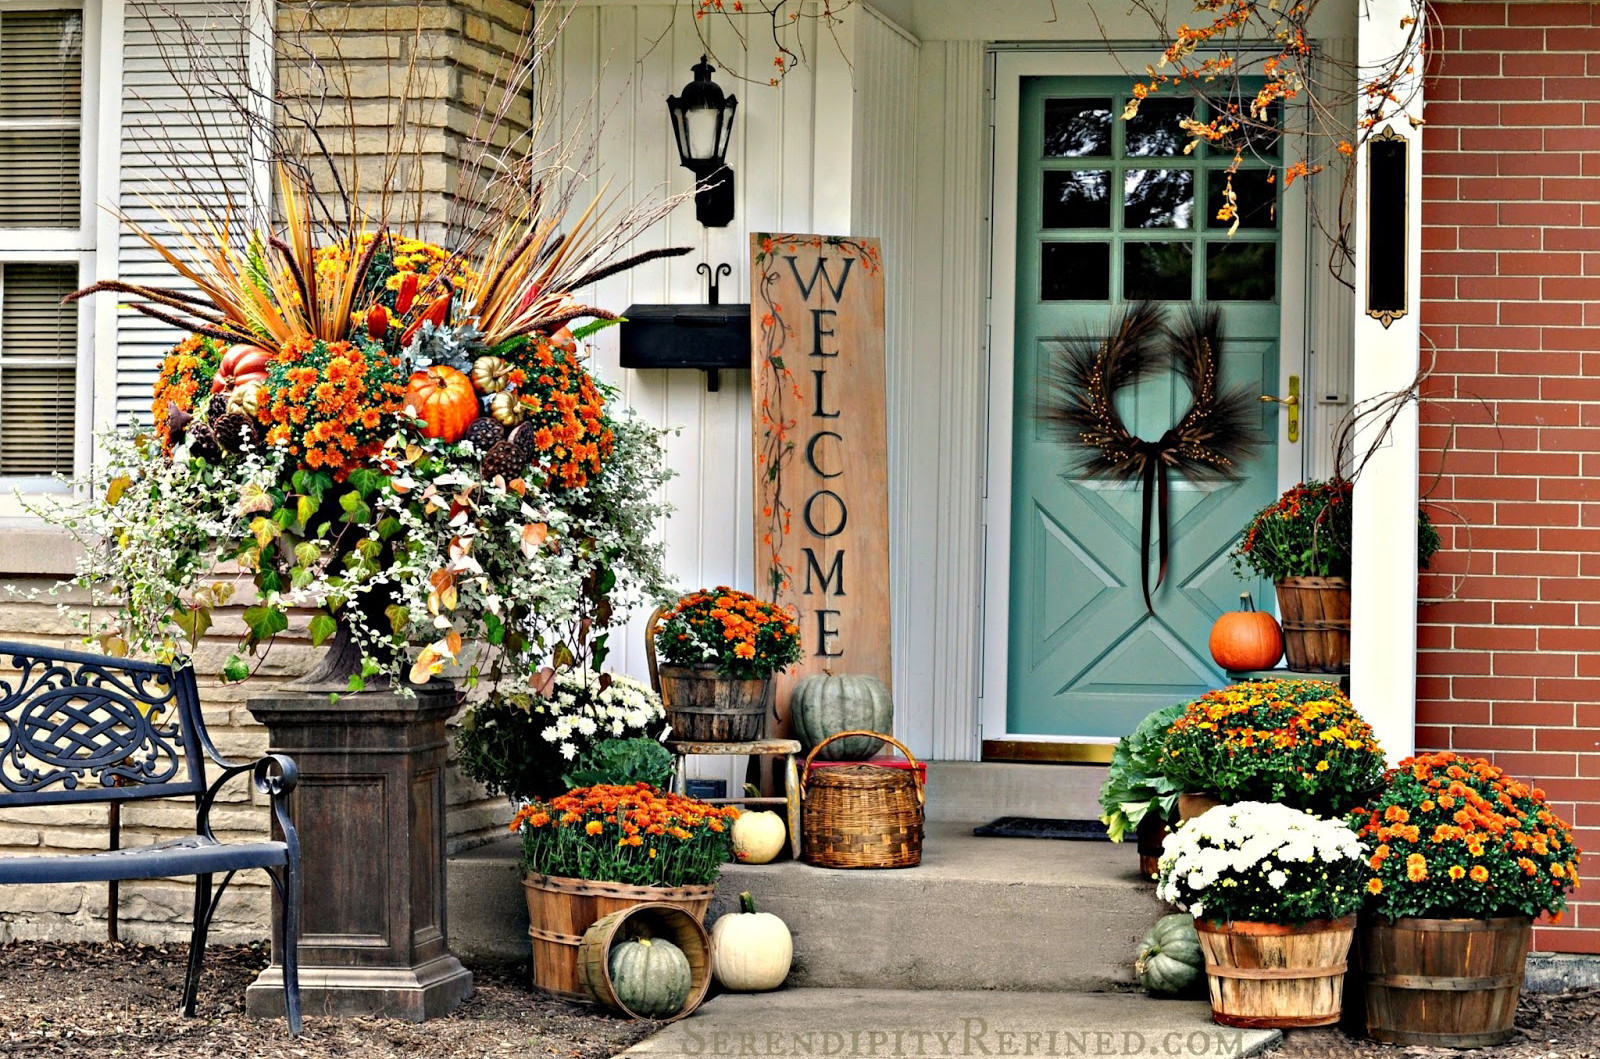 Fall Decorations For Front Porch  30 Fall Porch Decorating Ideas Ways to Decorate Your